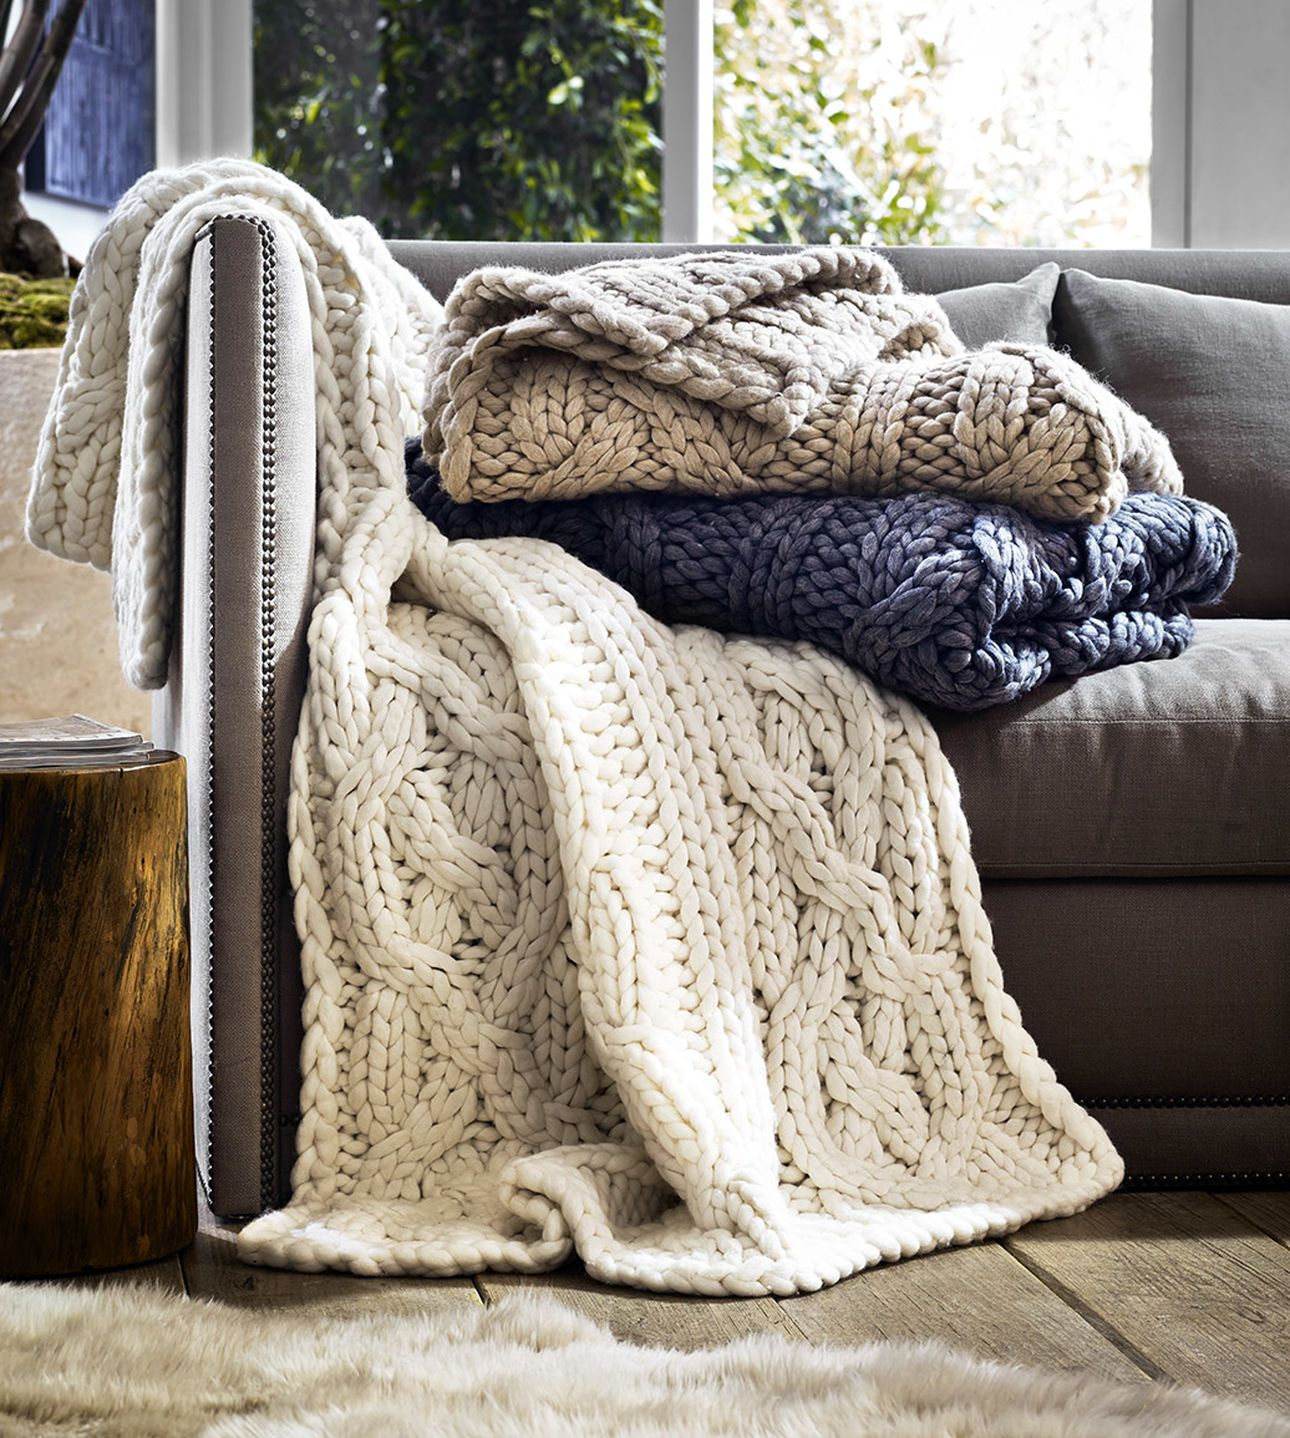 608a77dc5de Ugg Oversized Knit Blanket. I want this so bad! | For the Home ...